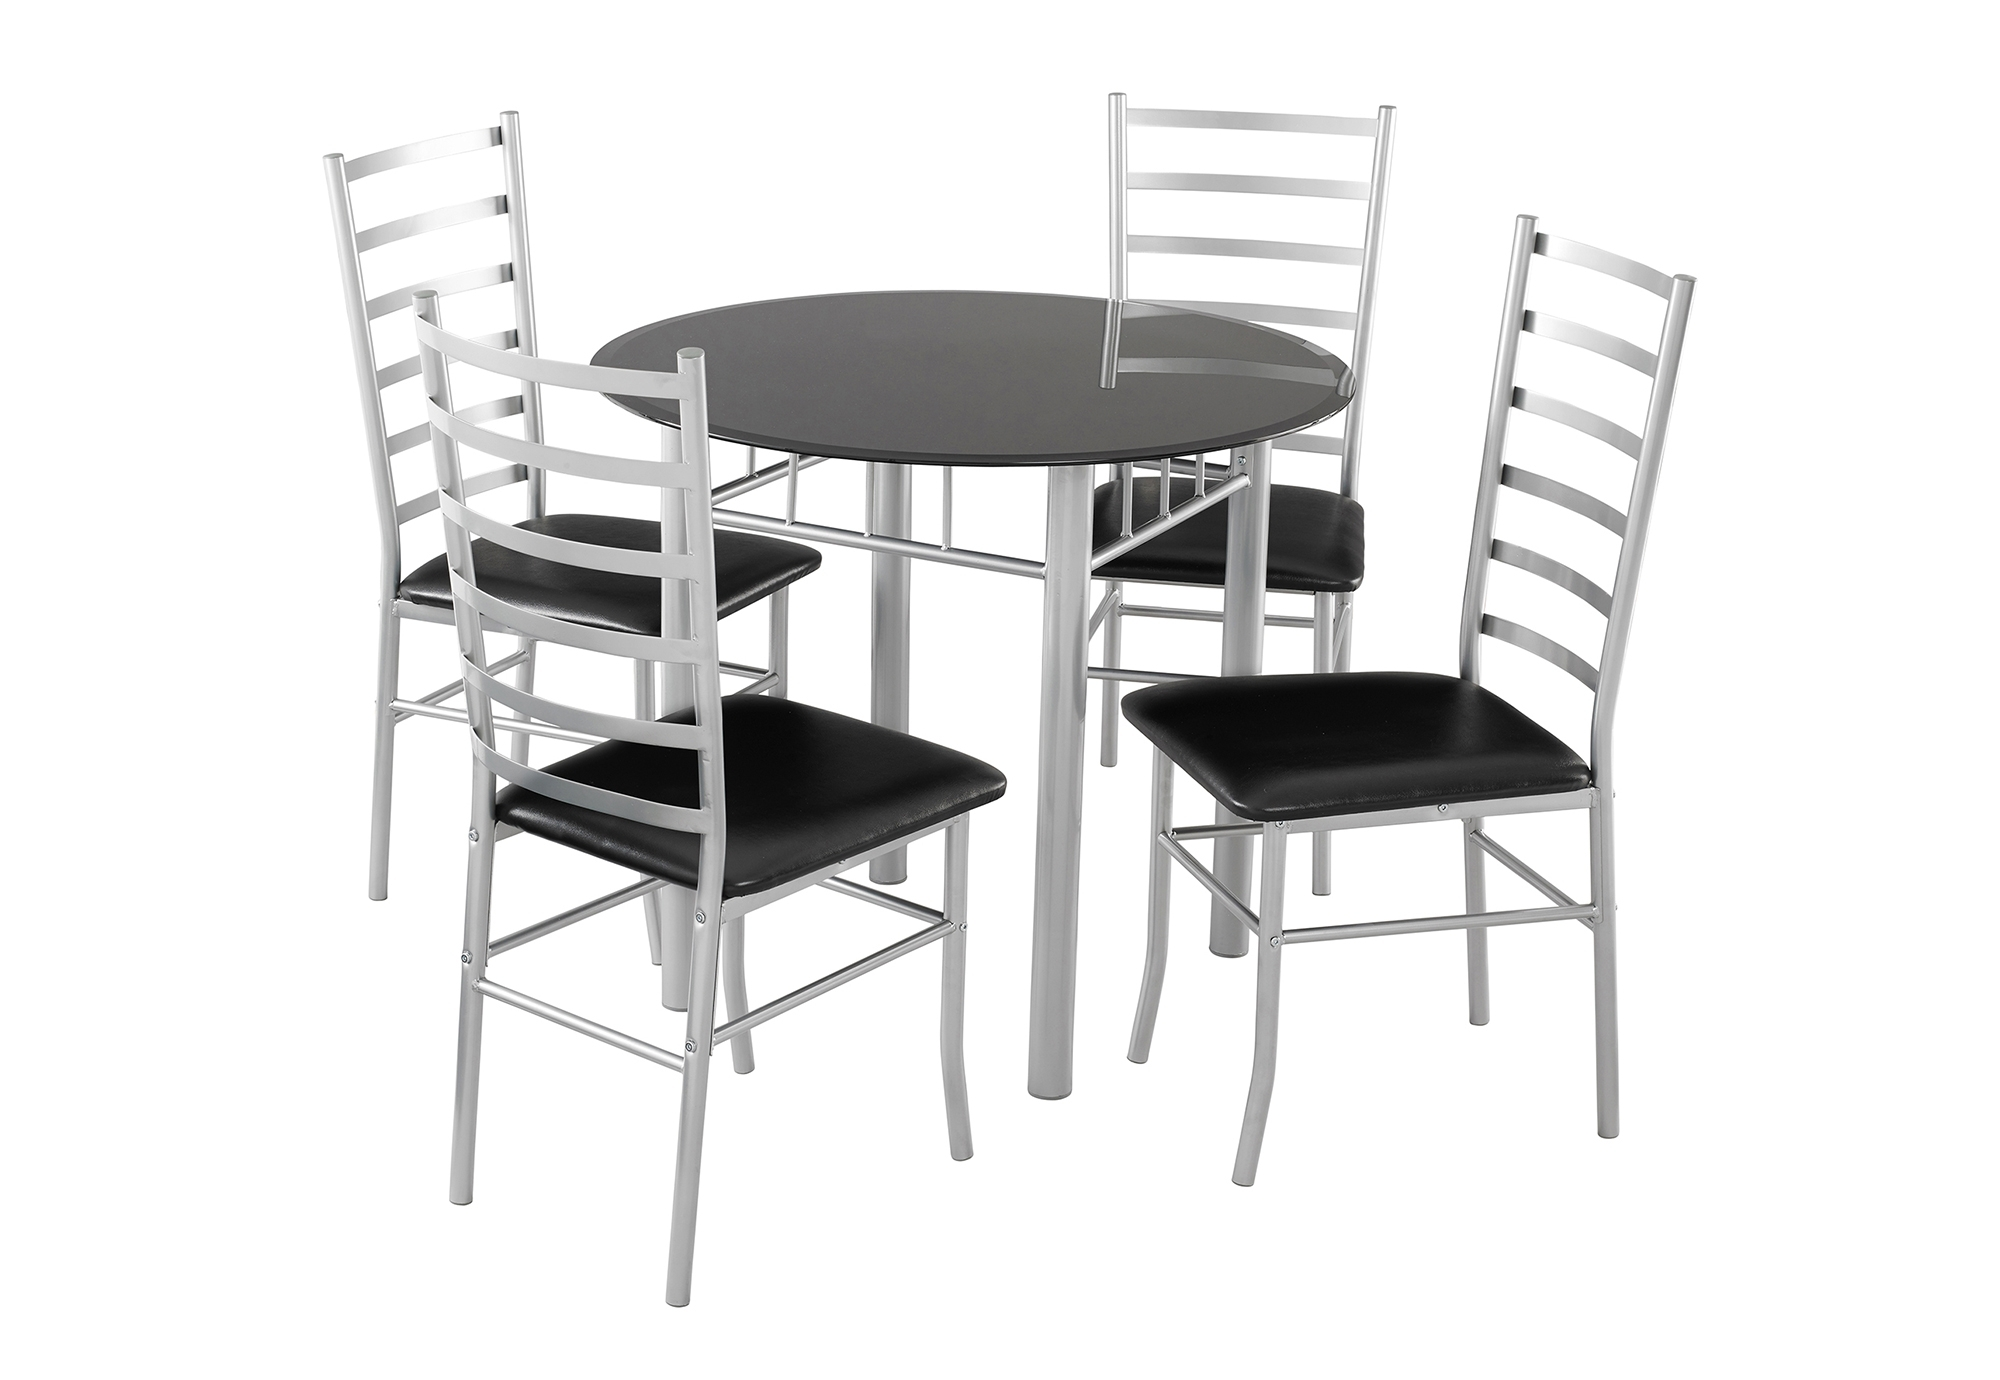 2017 Glass Dining Tables regarding Lincoln Dining Set 4 Seater - Black Glass Dining Table & 4 Chairs